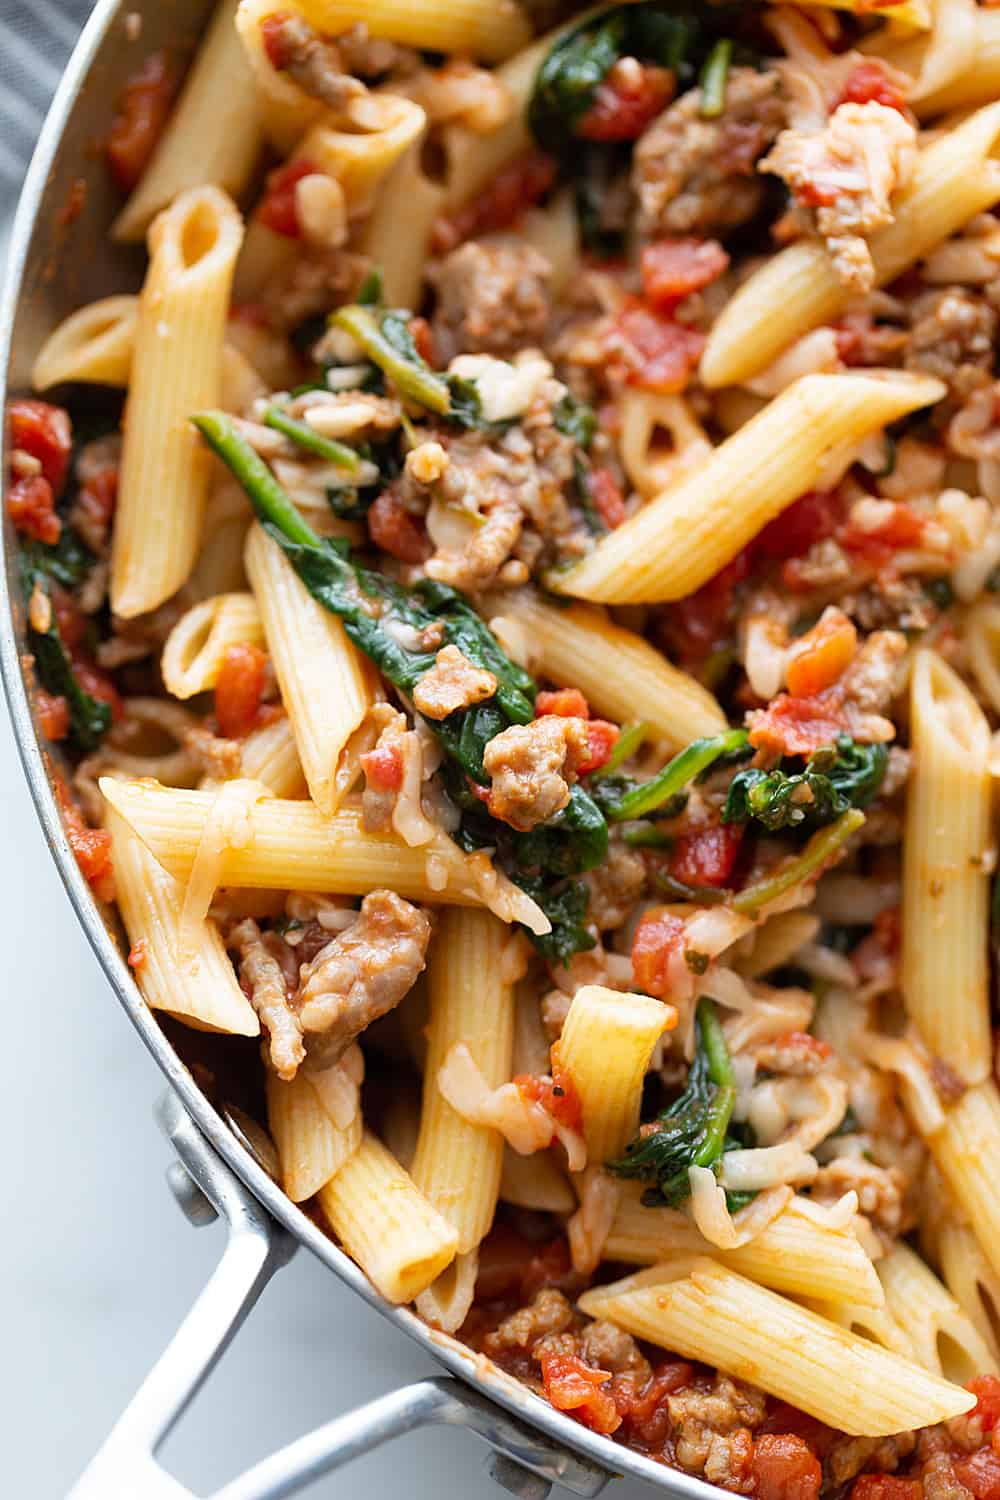 Tomato and Spinach Pasta Toss - With this easy tomato and spinach pasta toss recipe in your rotation, you can have a delicious, hearty meal ready in minutes! #pasta #italianfood #halfscratched #tomato #spinach #pastarecpie #maindish